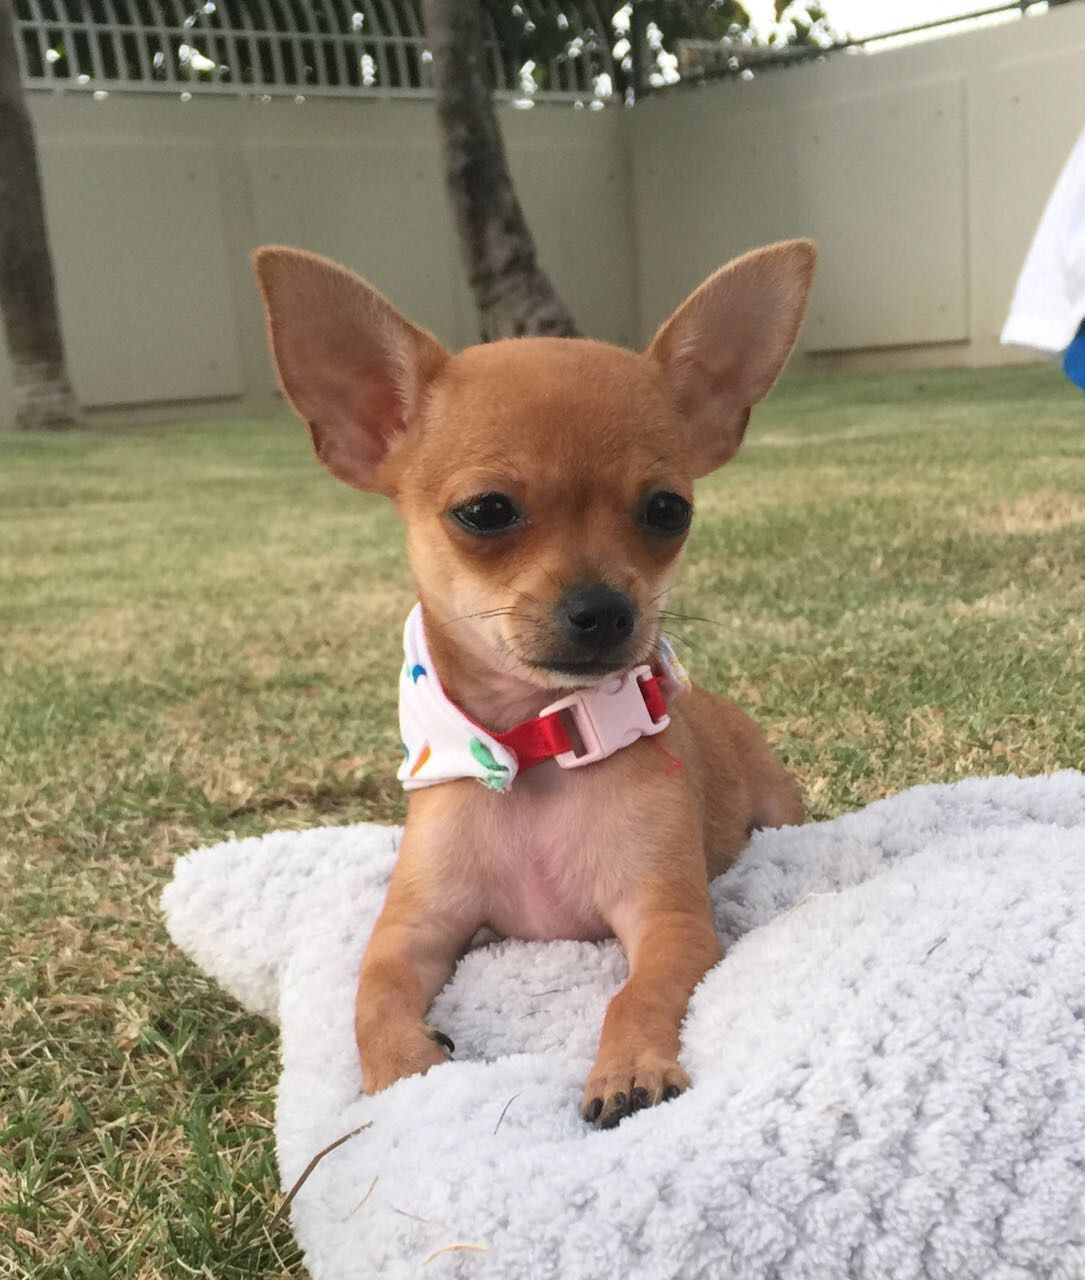 Teacup Brown Chihuahua Enjoying A Sunny Day Cutest Puppy Ever